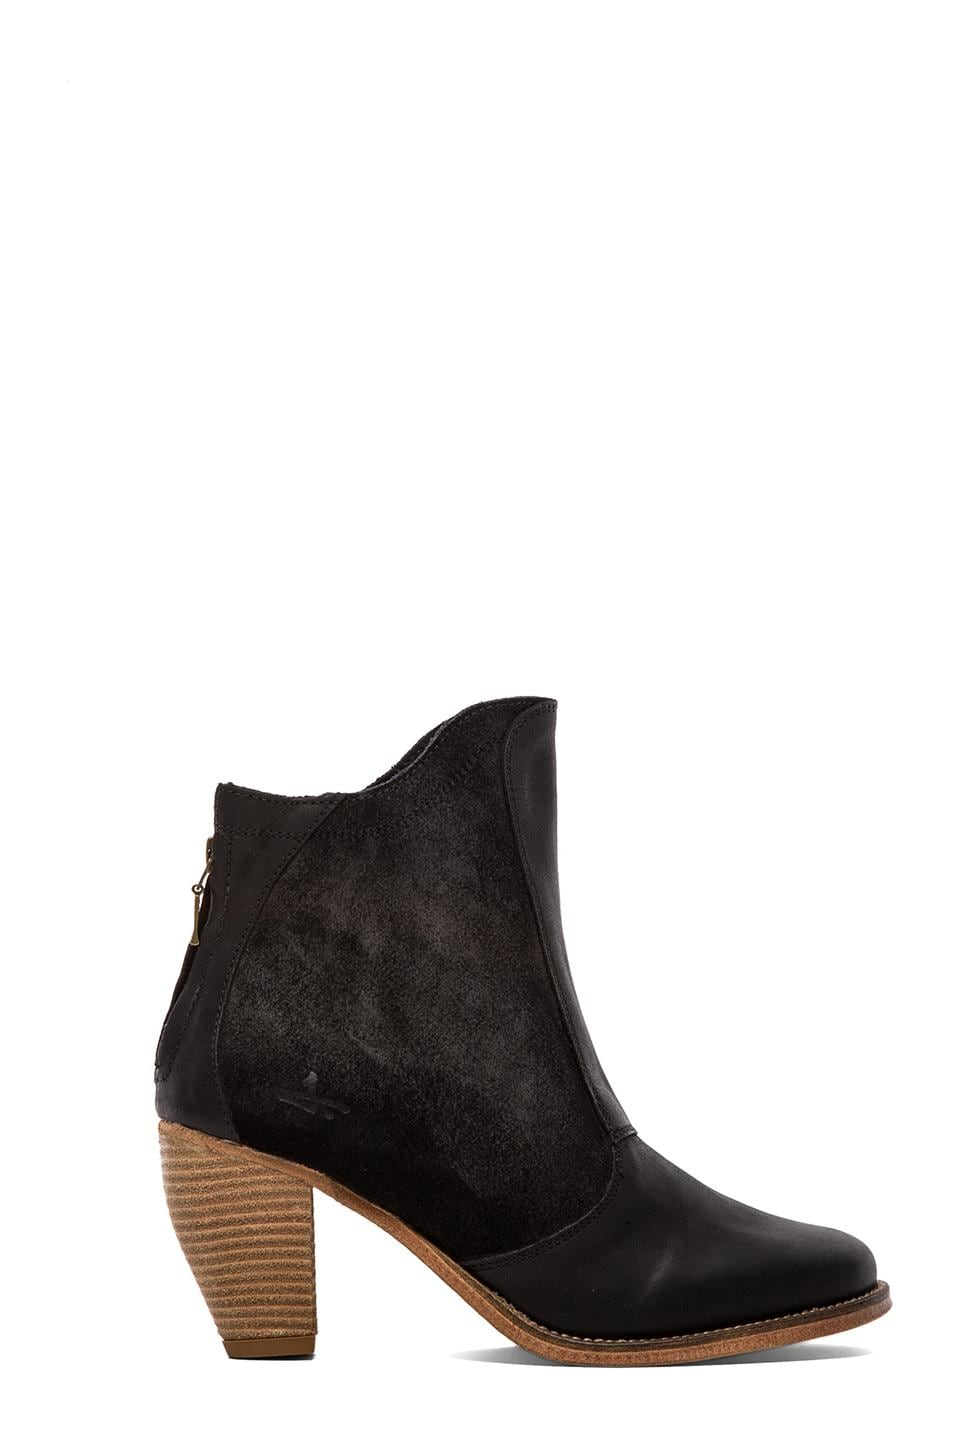 J SHOES Ranch Canter Slip On Bootie in Black